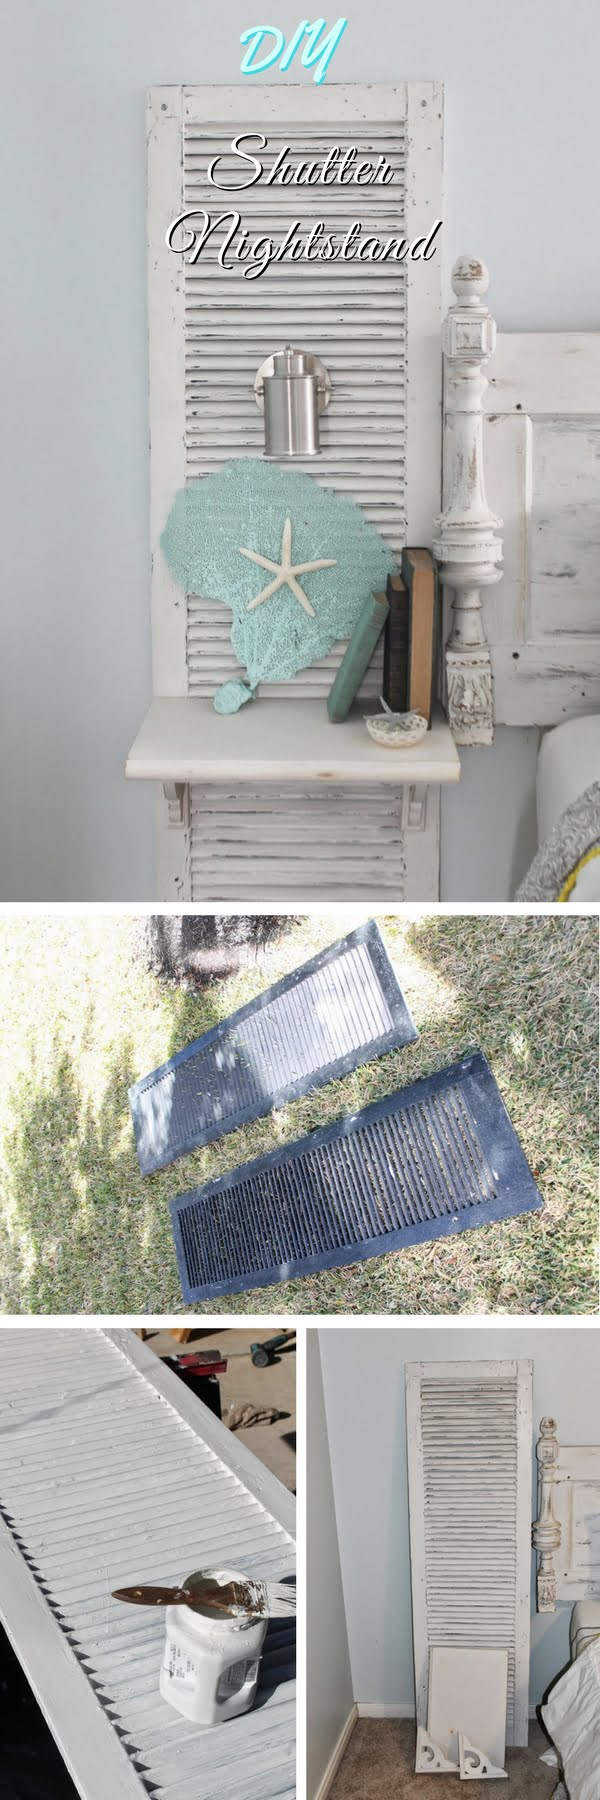 How to make a DIY nightstand from an old shutter